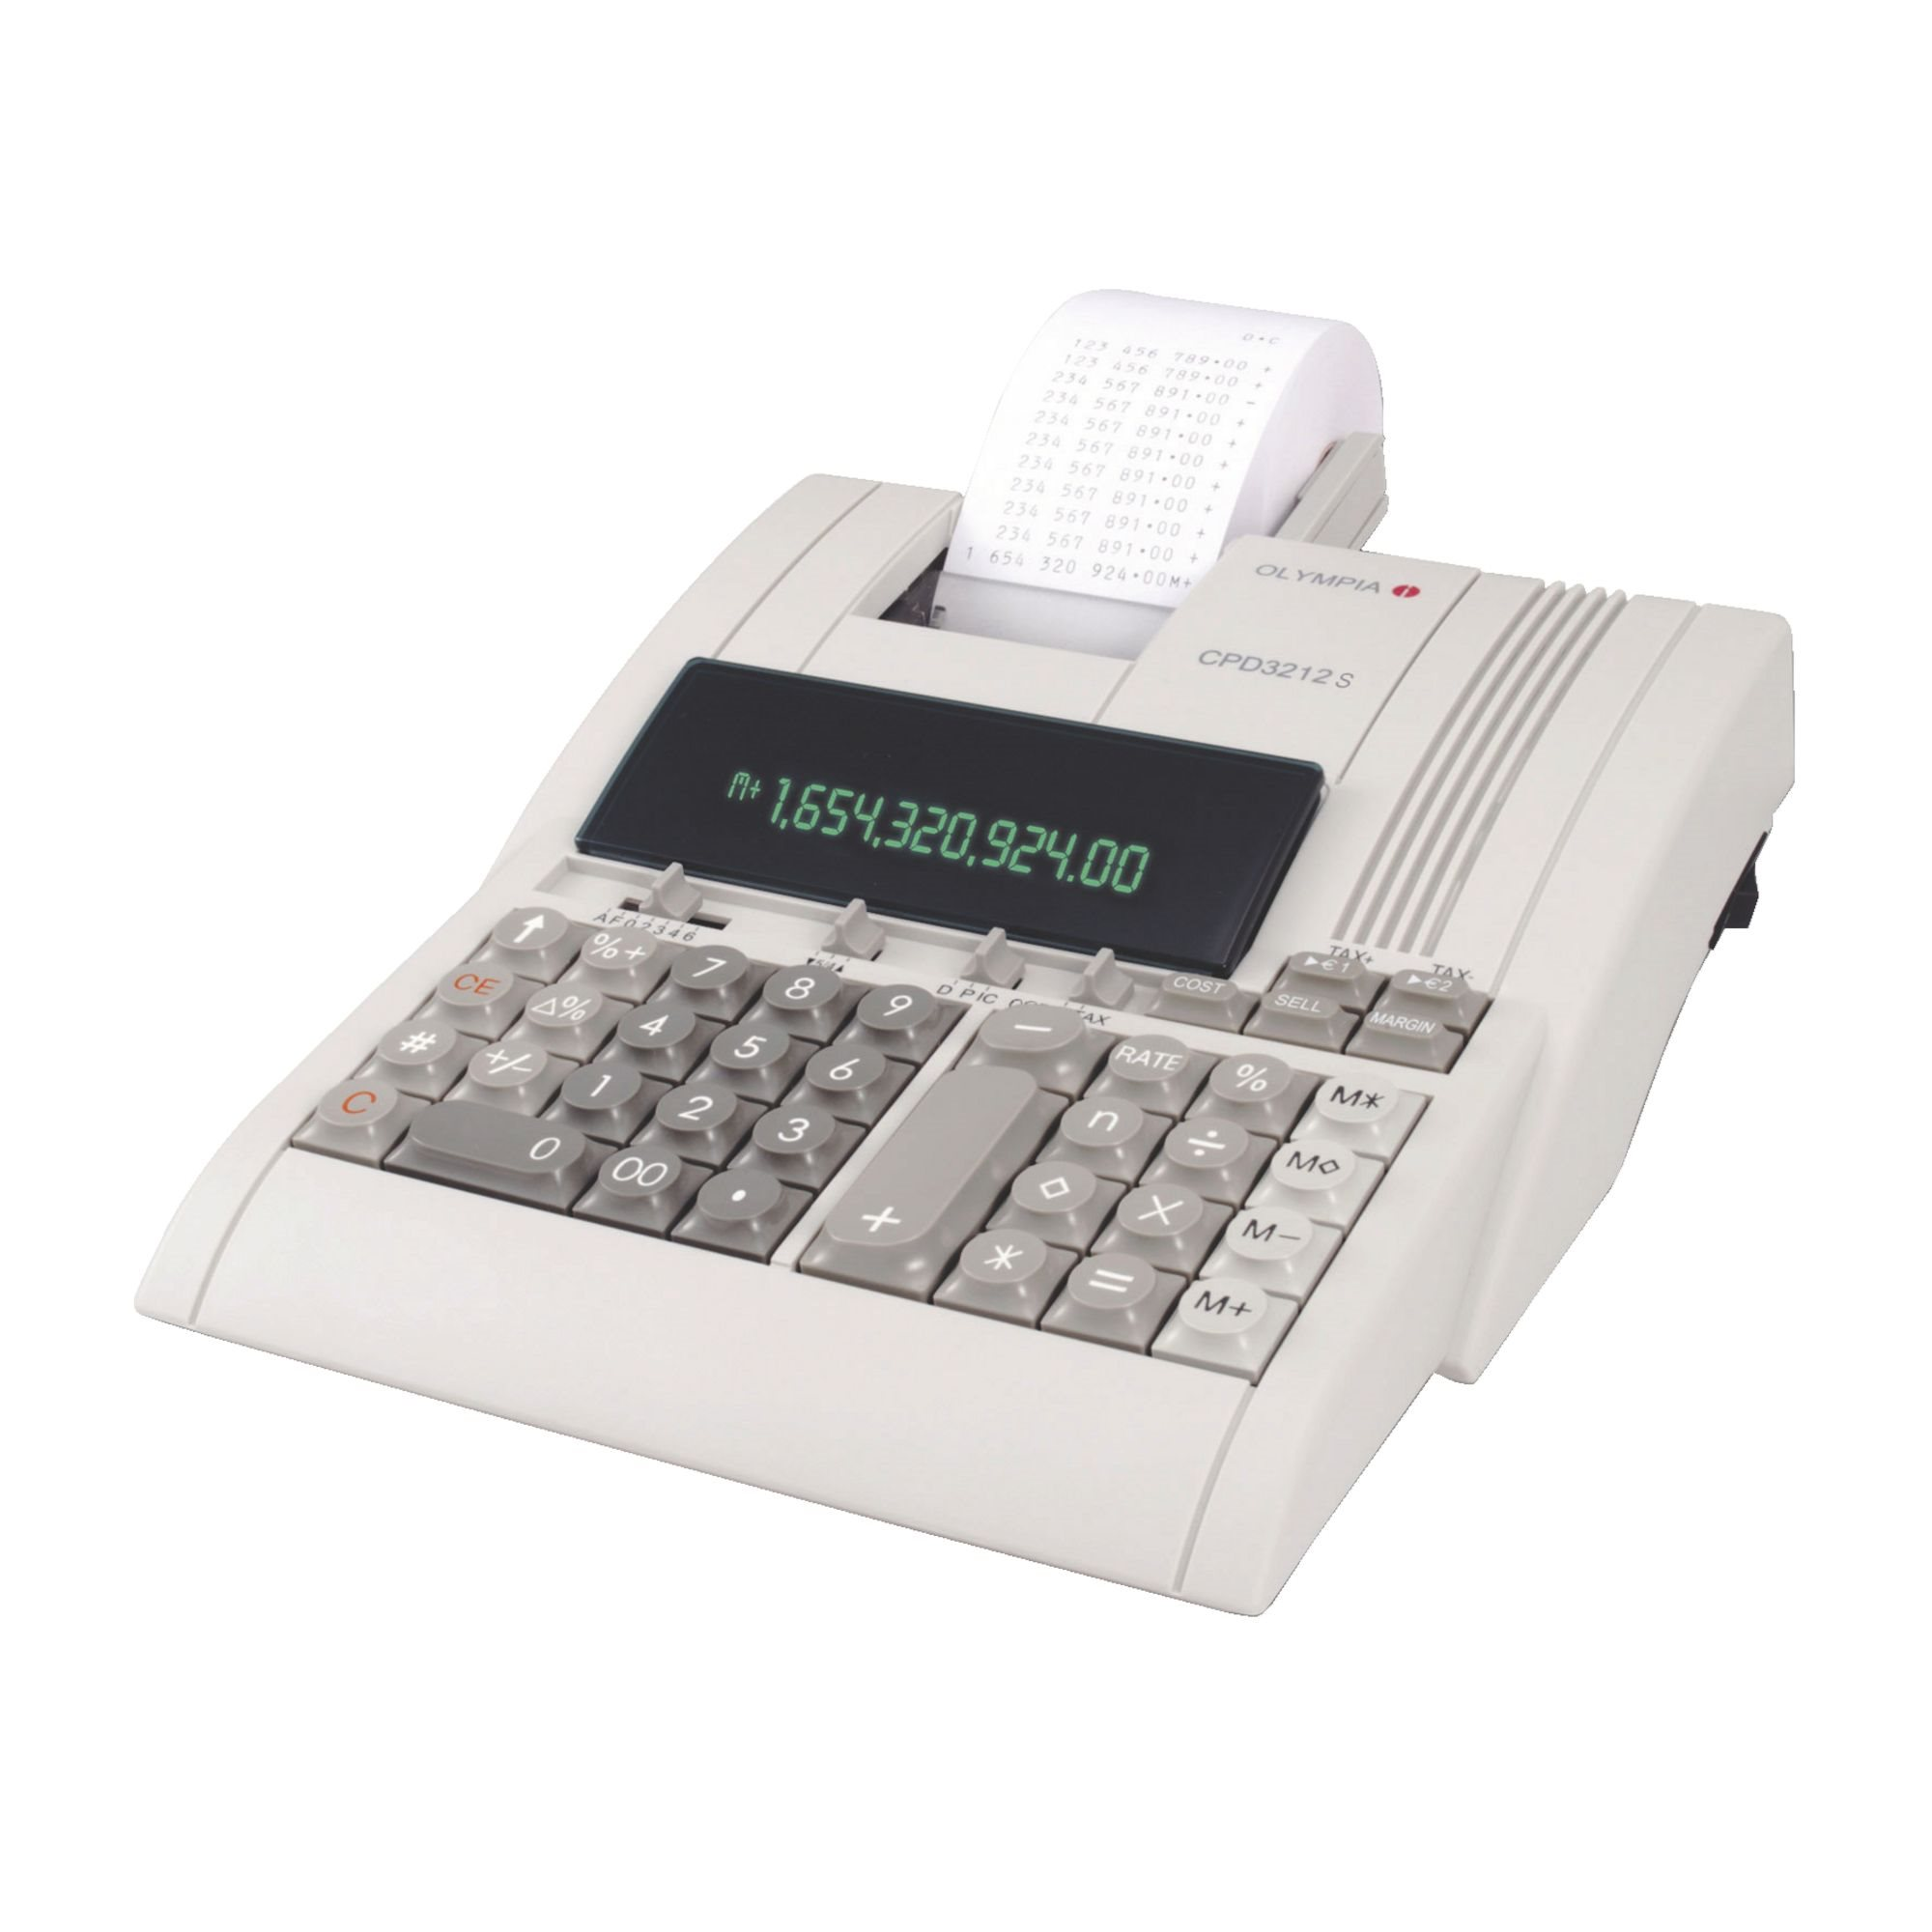 CALCULATRICE OLYMPIA AVEC RLX CPD 3212S